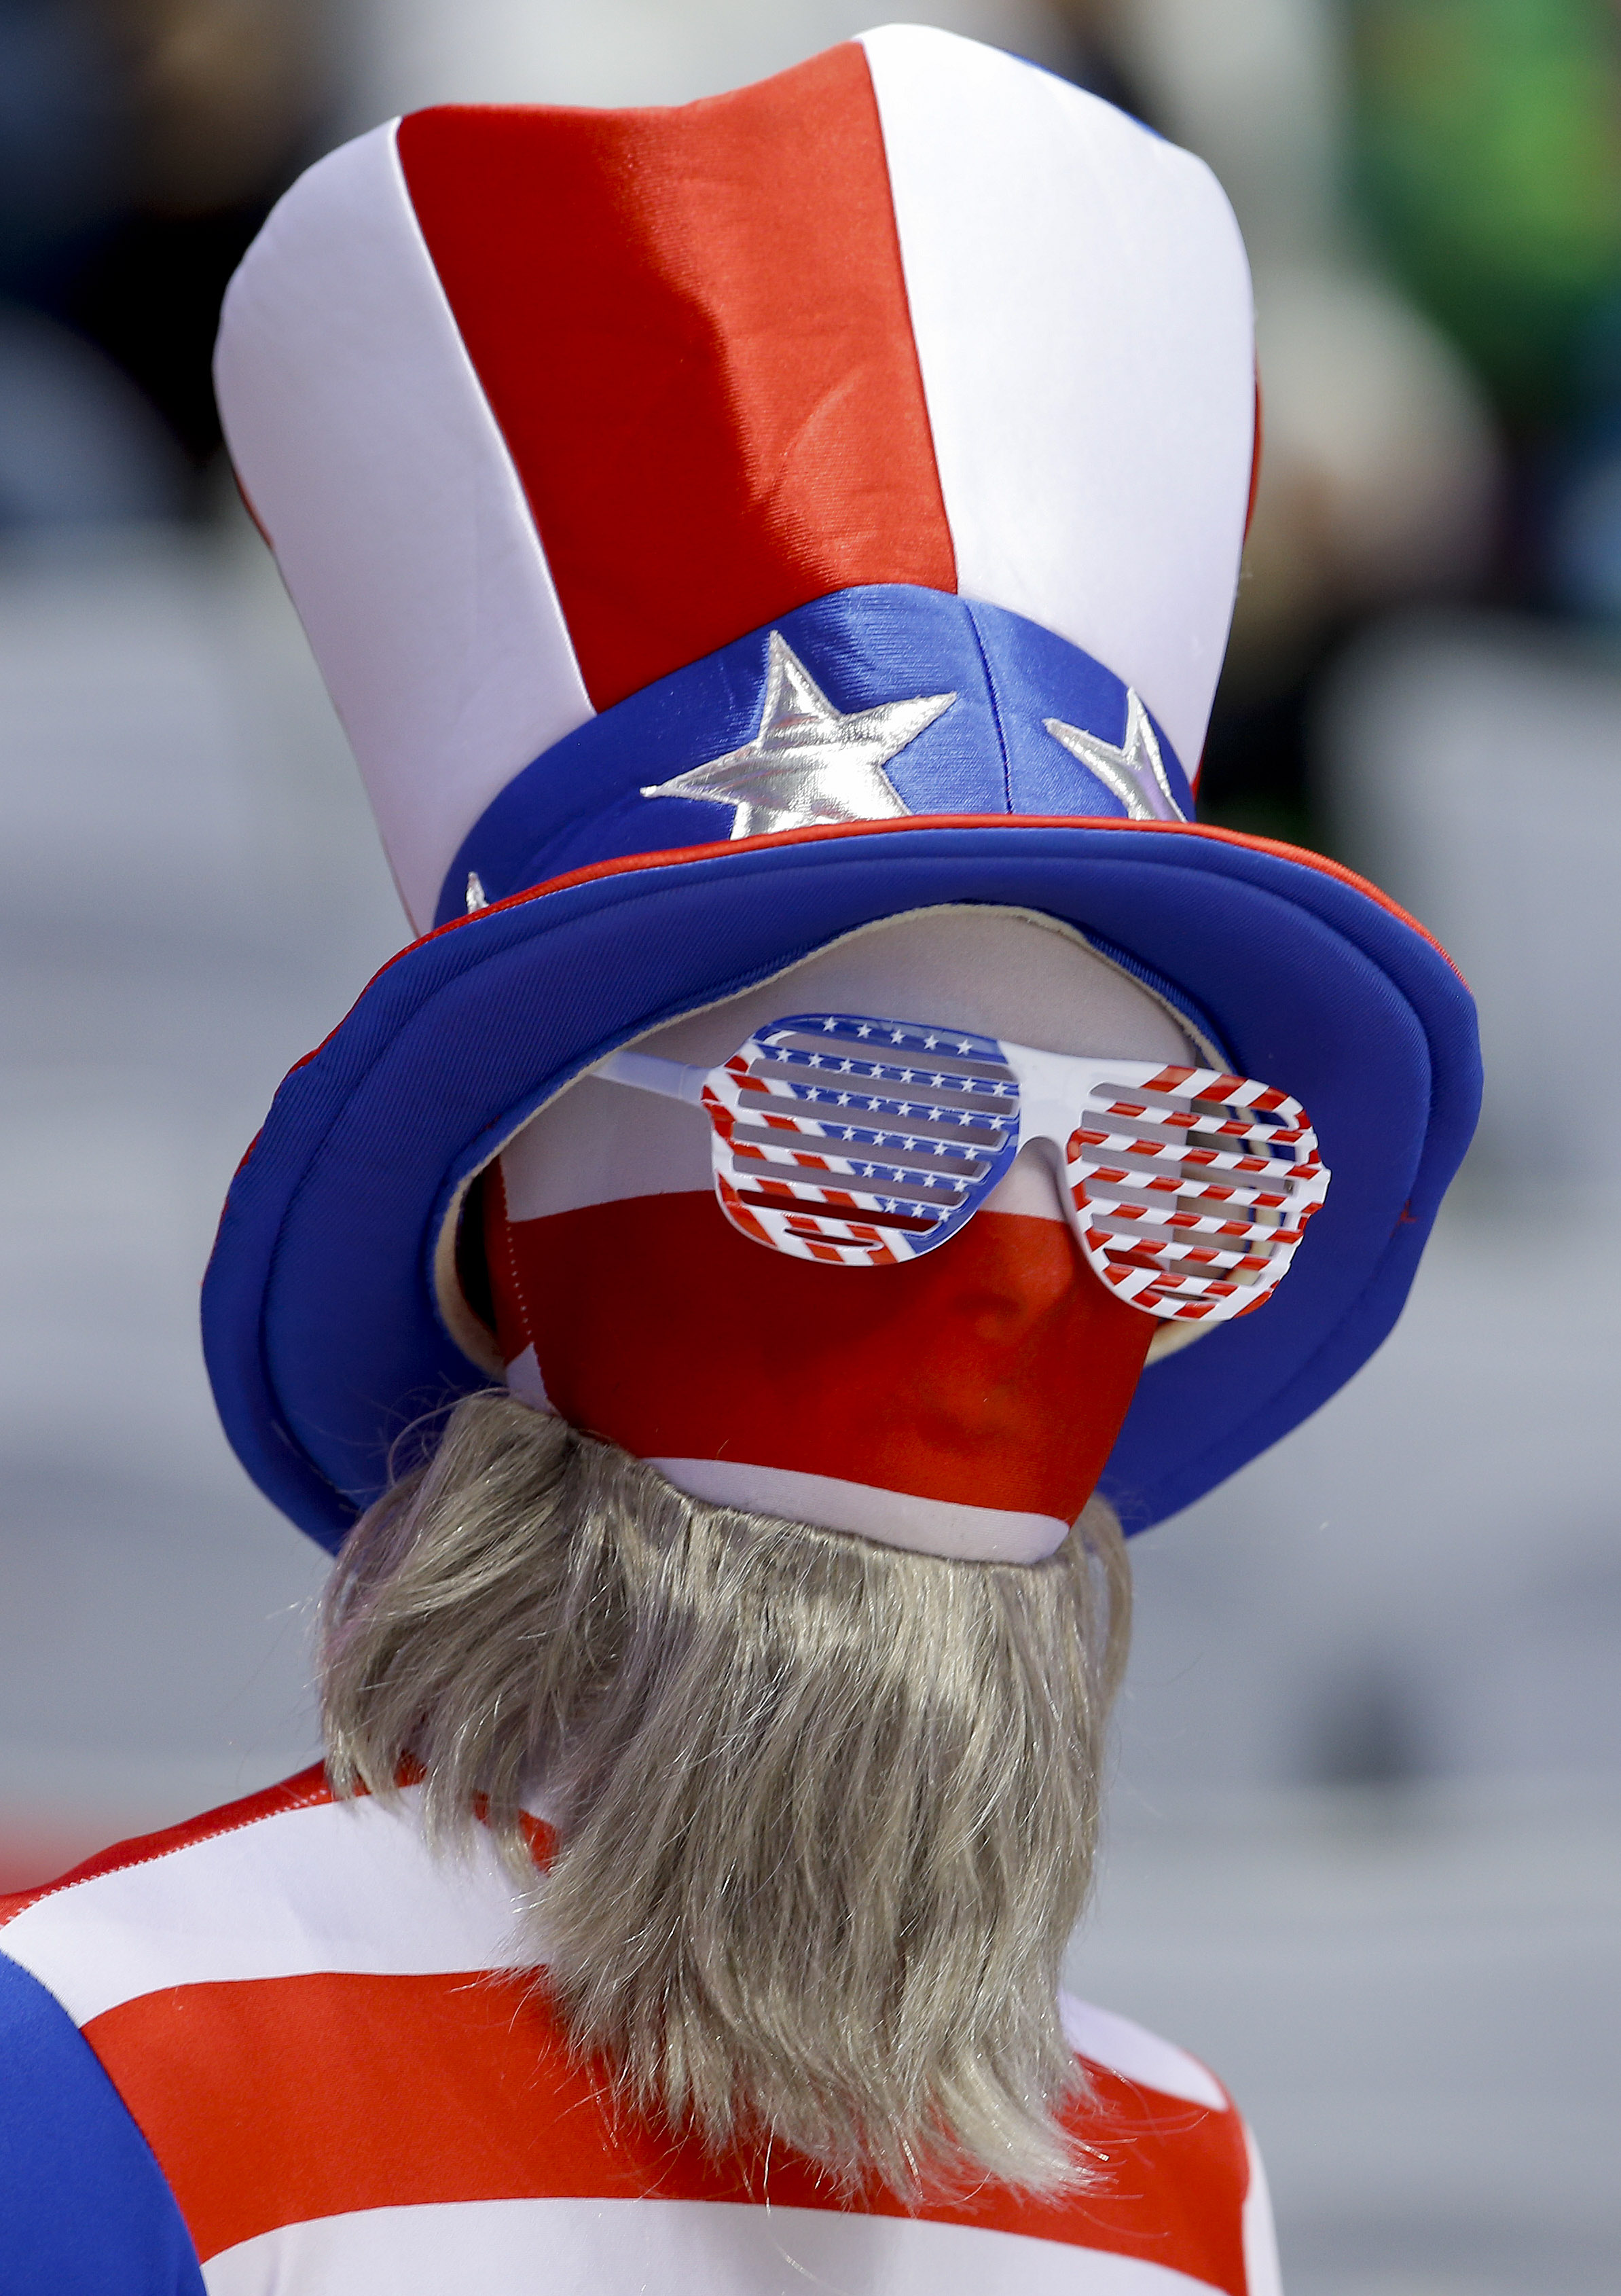 A USA hockey fan watches play against Canada during the women's gold medal ice hockey game at the 2014 Winter Olympics, Thursday, Feb. 20, 2014, in Sochi, Russia. (AP Photo/Matt Slocum)